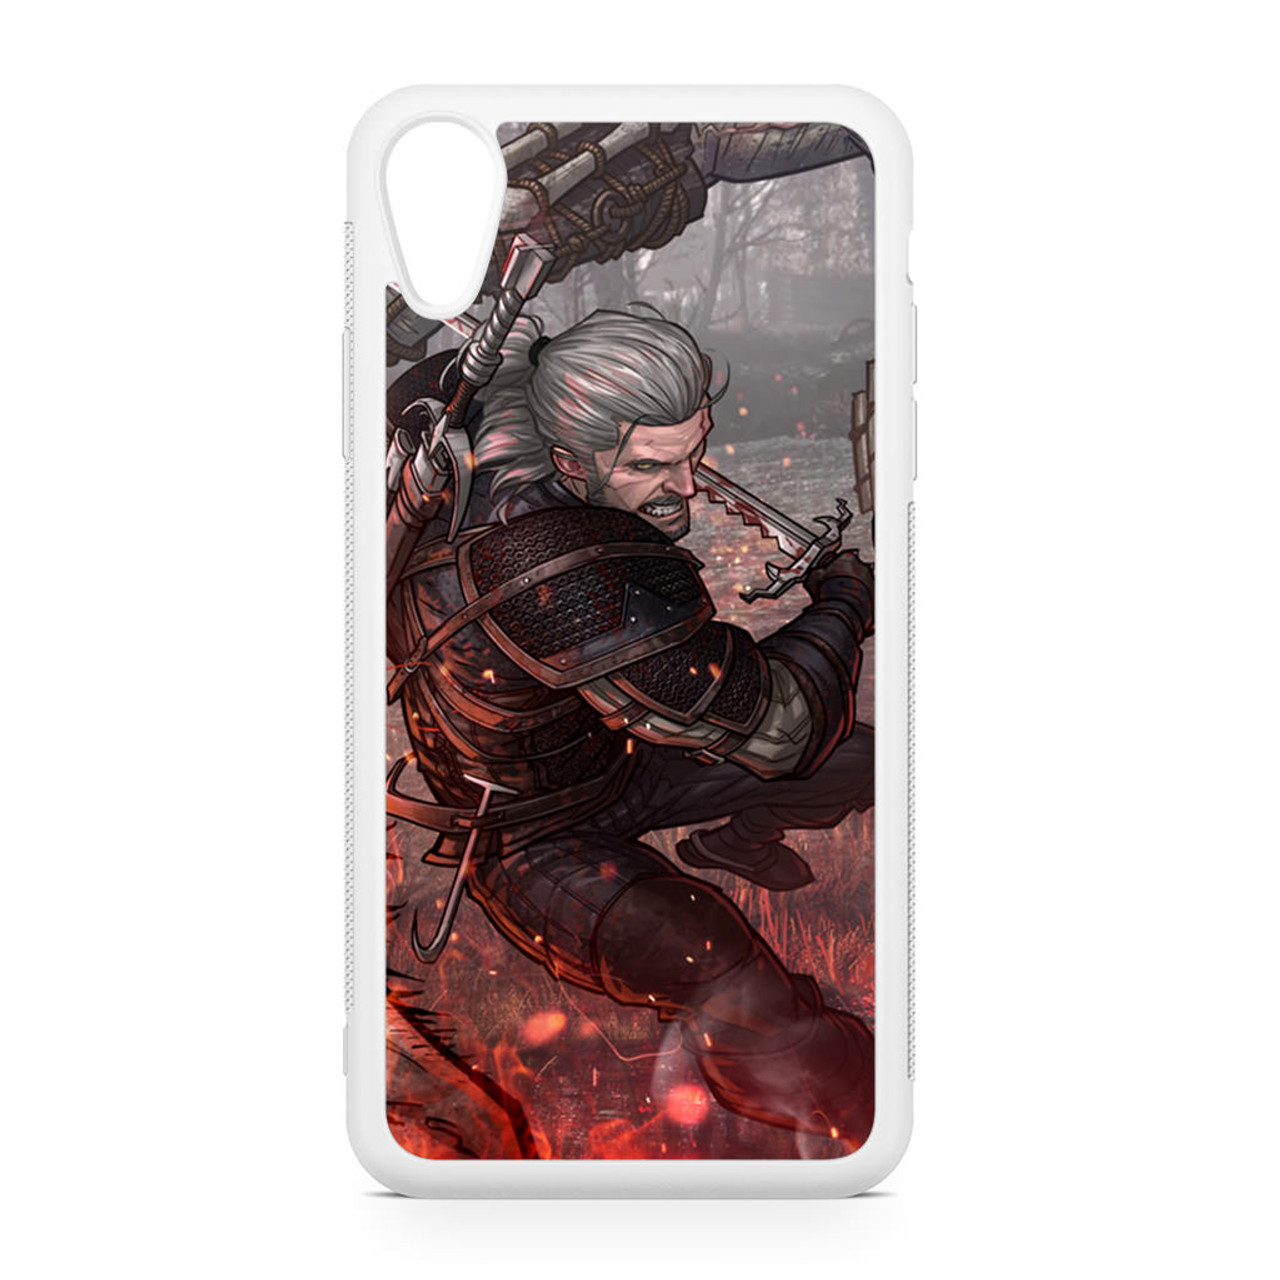 Witcher Is Coming iphone case